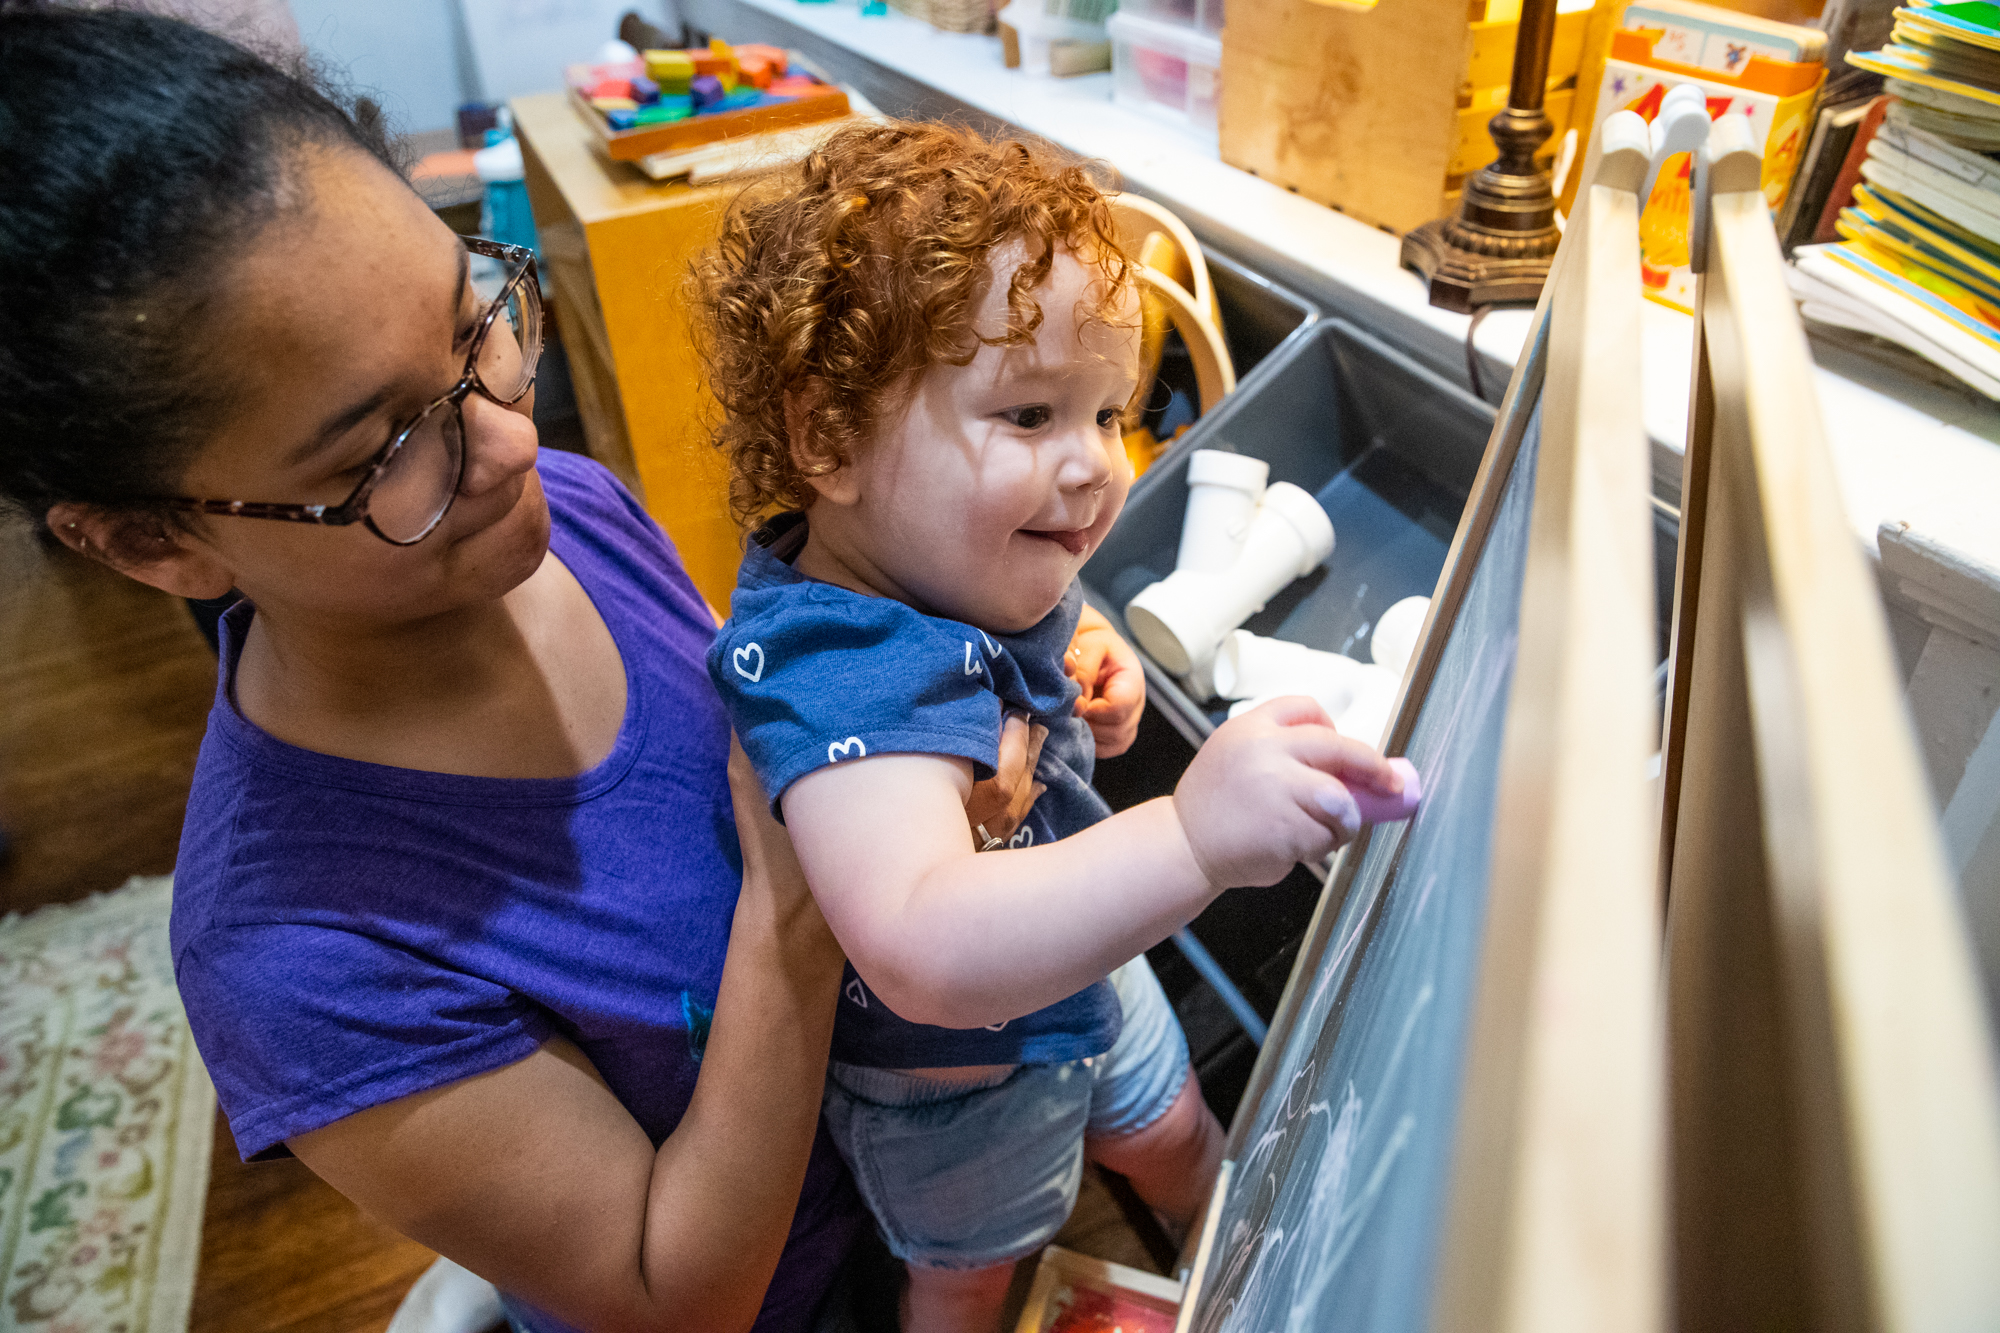 Justice Vaughn (left), daughter of Cynthia Randolph-Vaughn of Cindy's Center For Young Learners, lifts up Prose VanVeelen, 2, while coloring with chalk on Wednesday, May 29, 2019. Randolph-Vaughn runs a level 4 child care center out of her home. The children range from 8 months to 4 years old. Justice volunteers at the child care center.